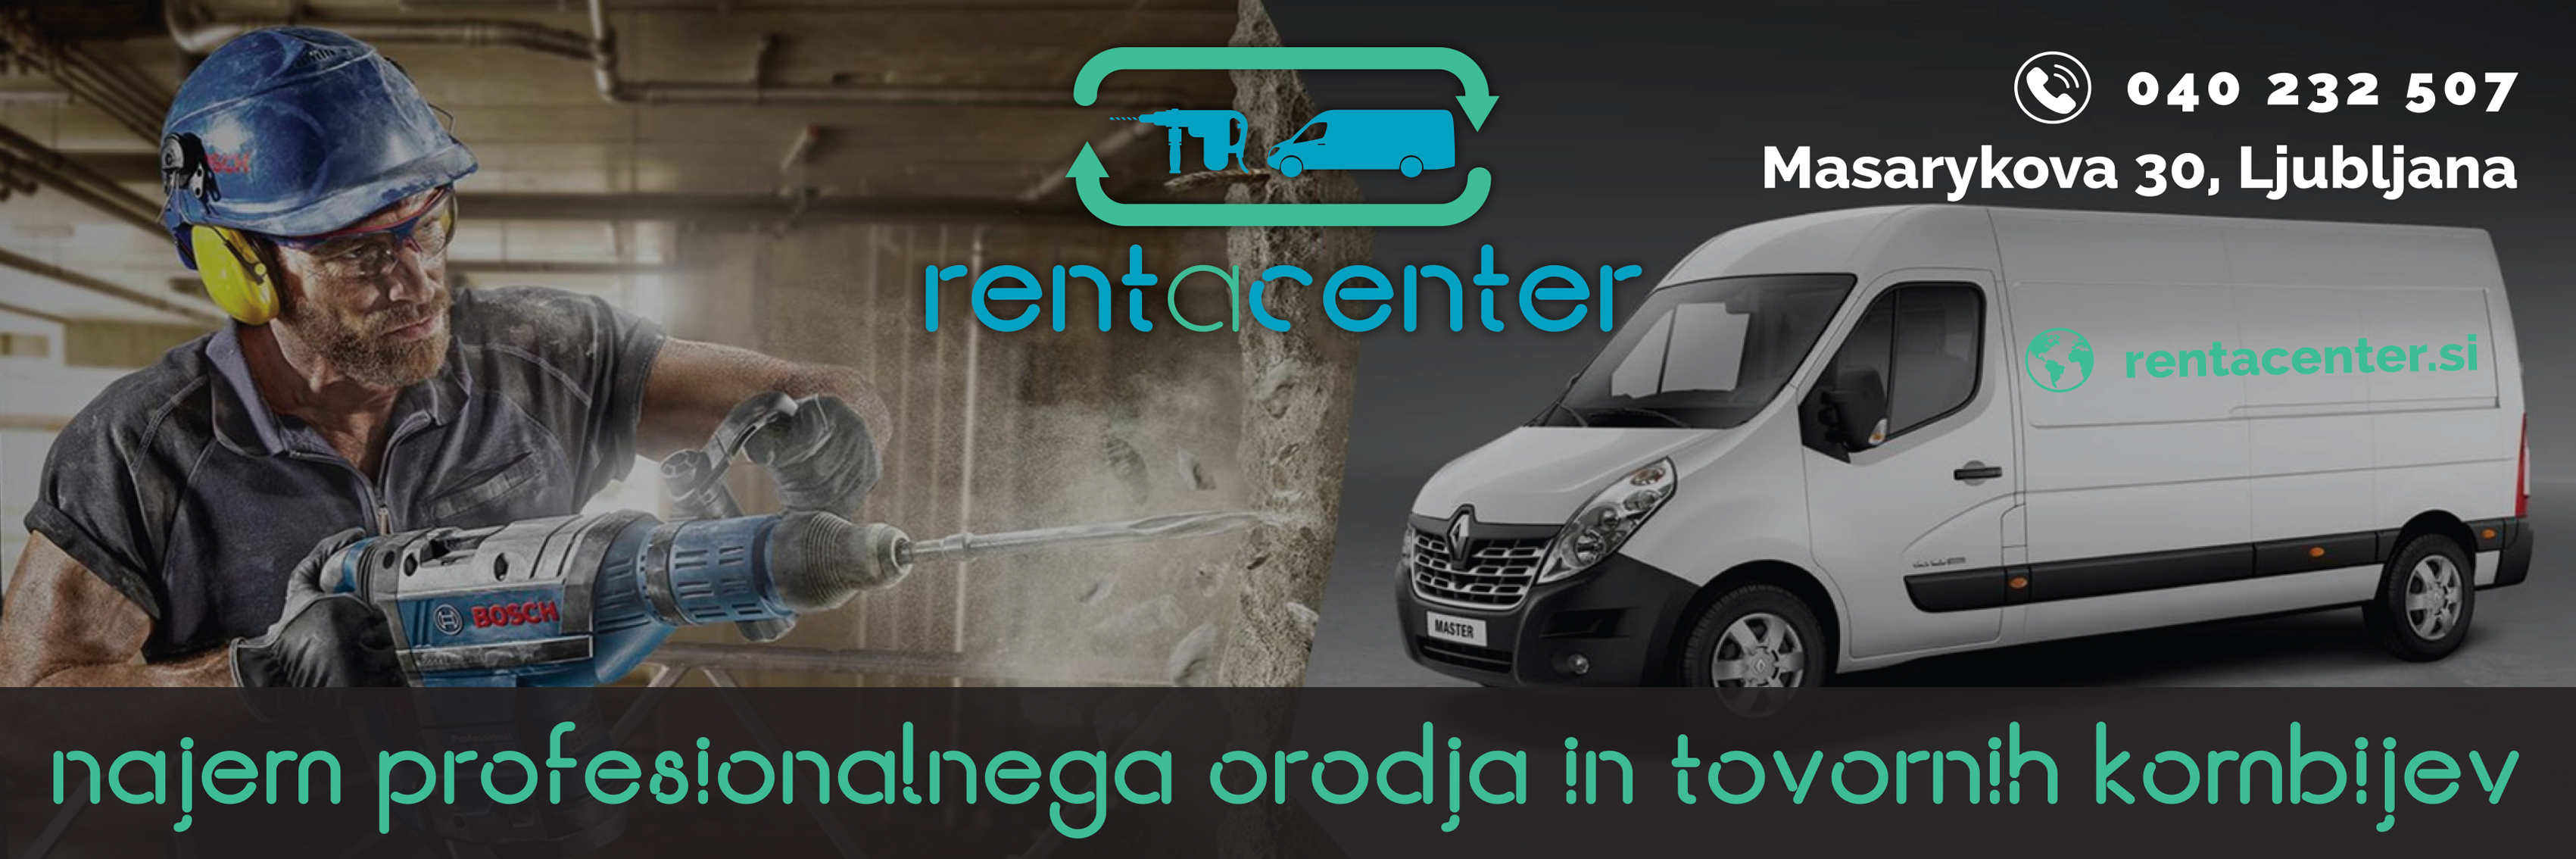 rent-a-center-website-banner